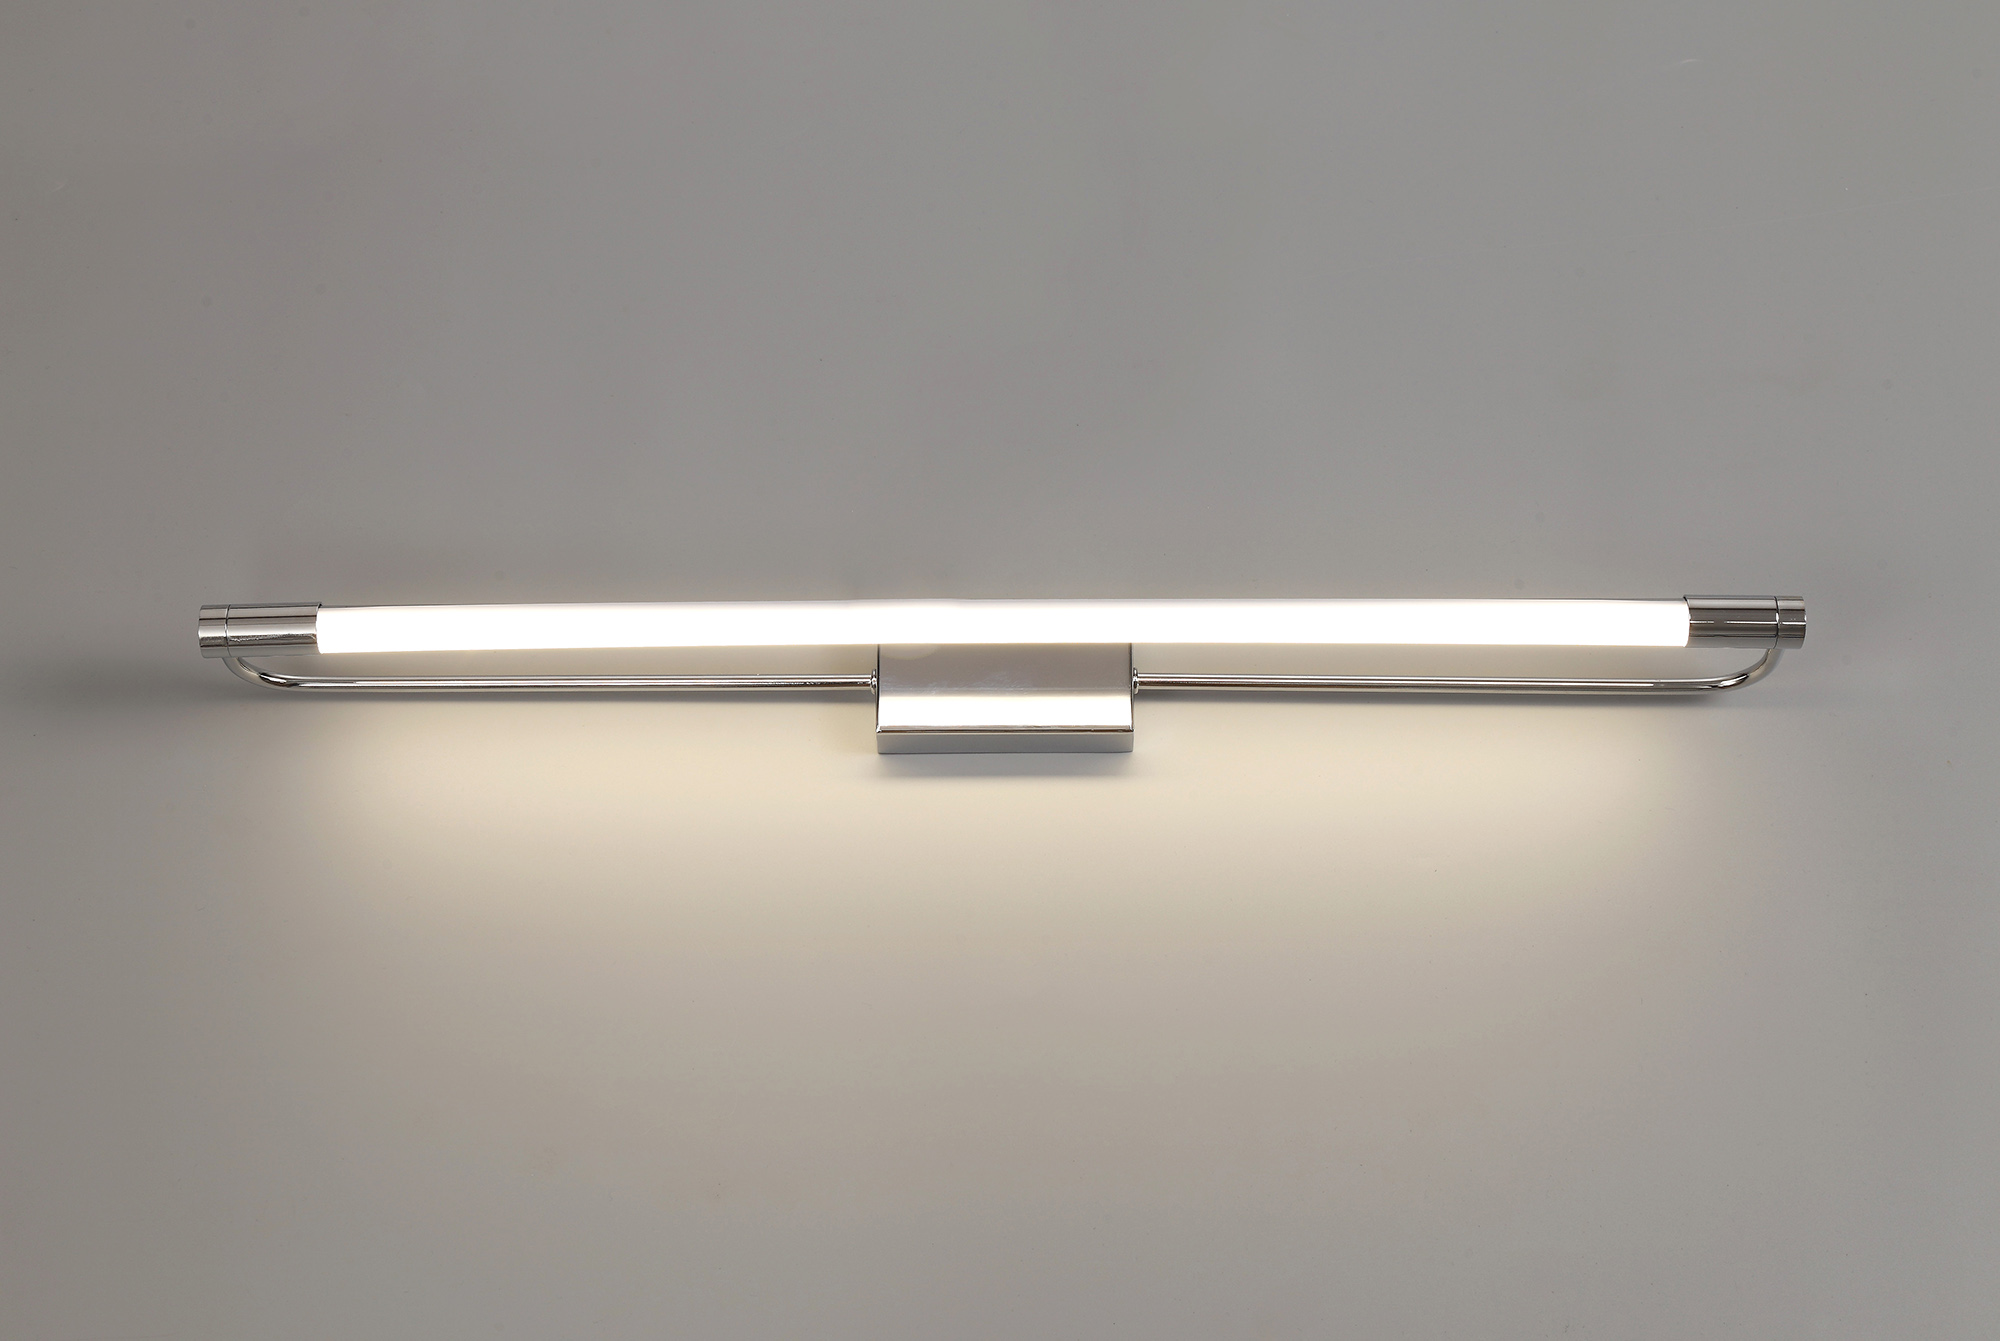 LED 1 x 14W Chrome Wall Lamp Large 1 Light 4000K IP44 3yr Warranty